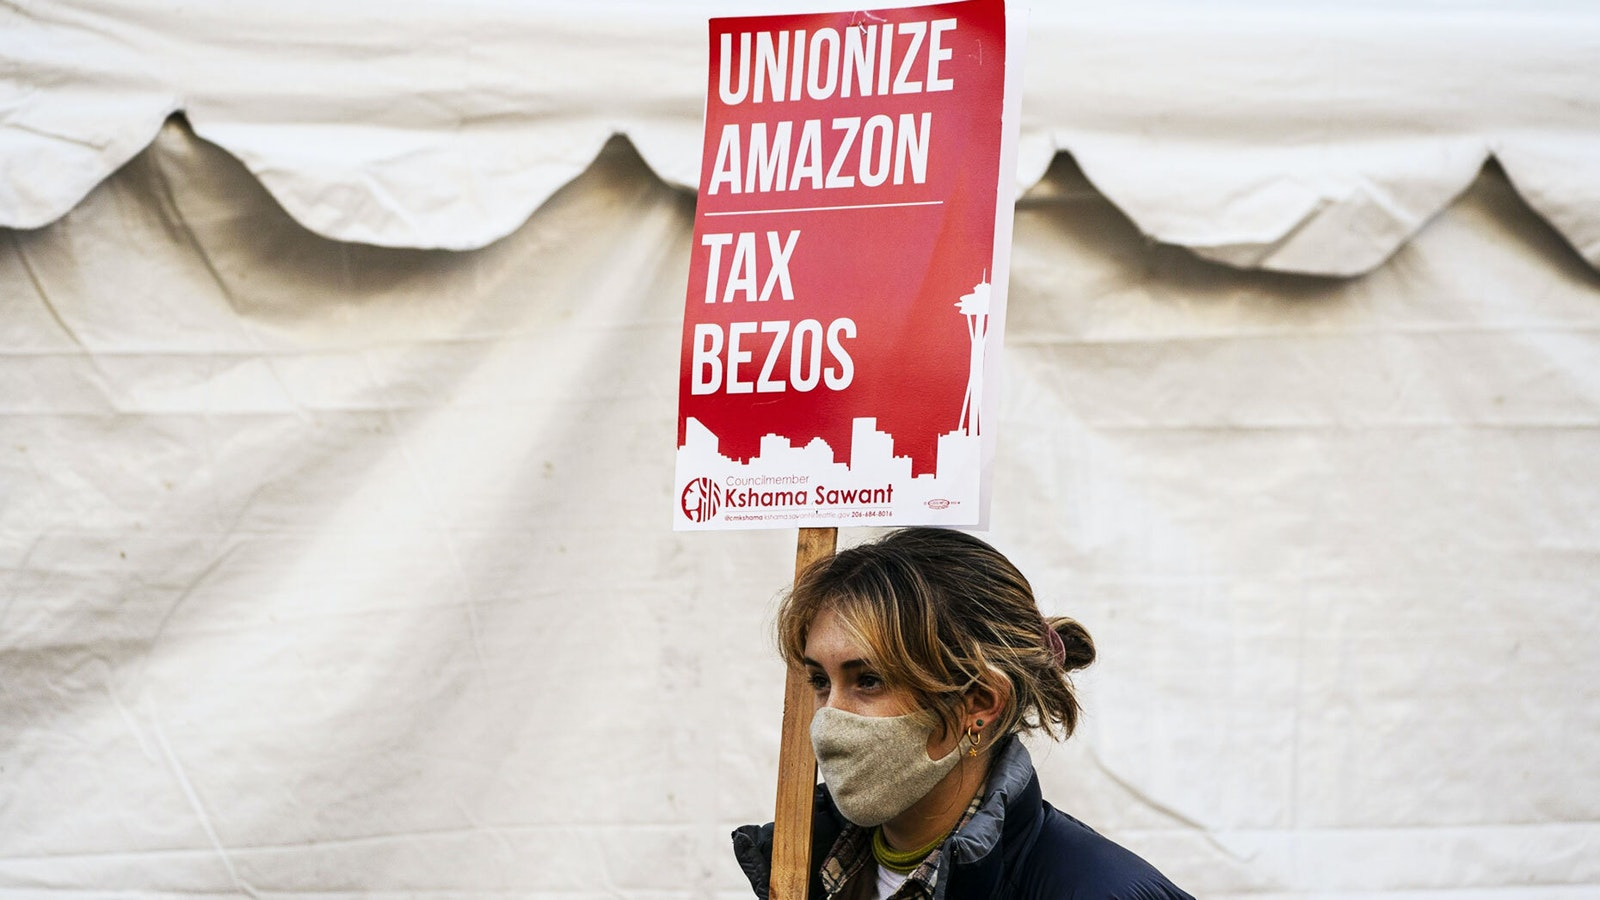 A demonstrator protesting outside Amazon's headquarters in Seattle in November. Photo by Bloomberg